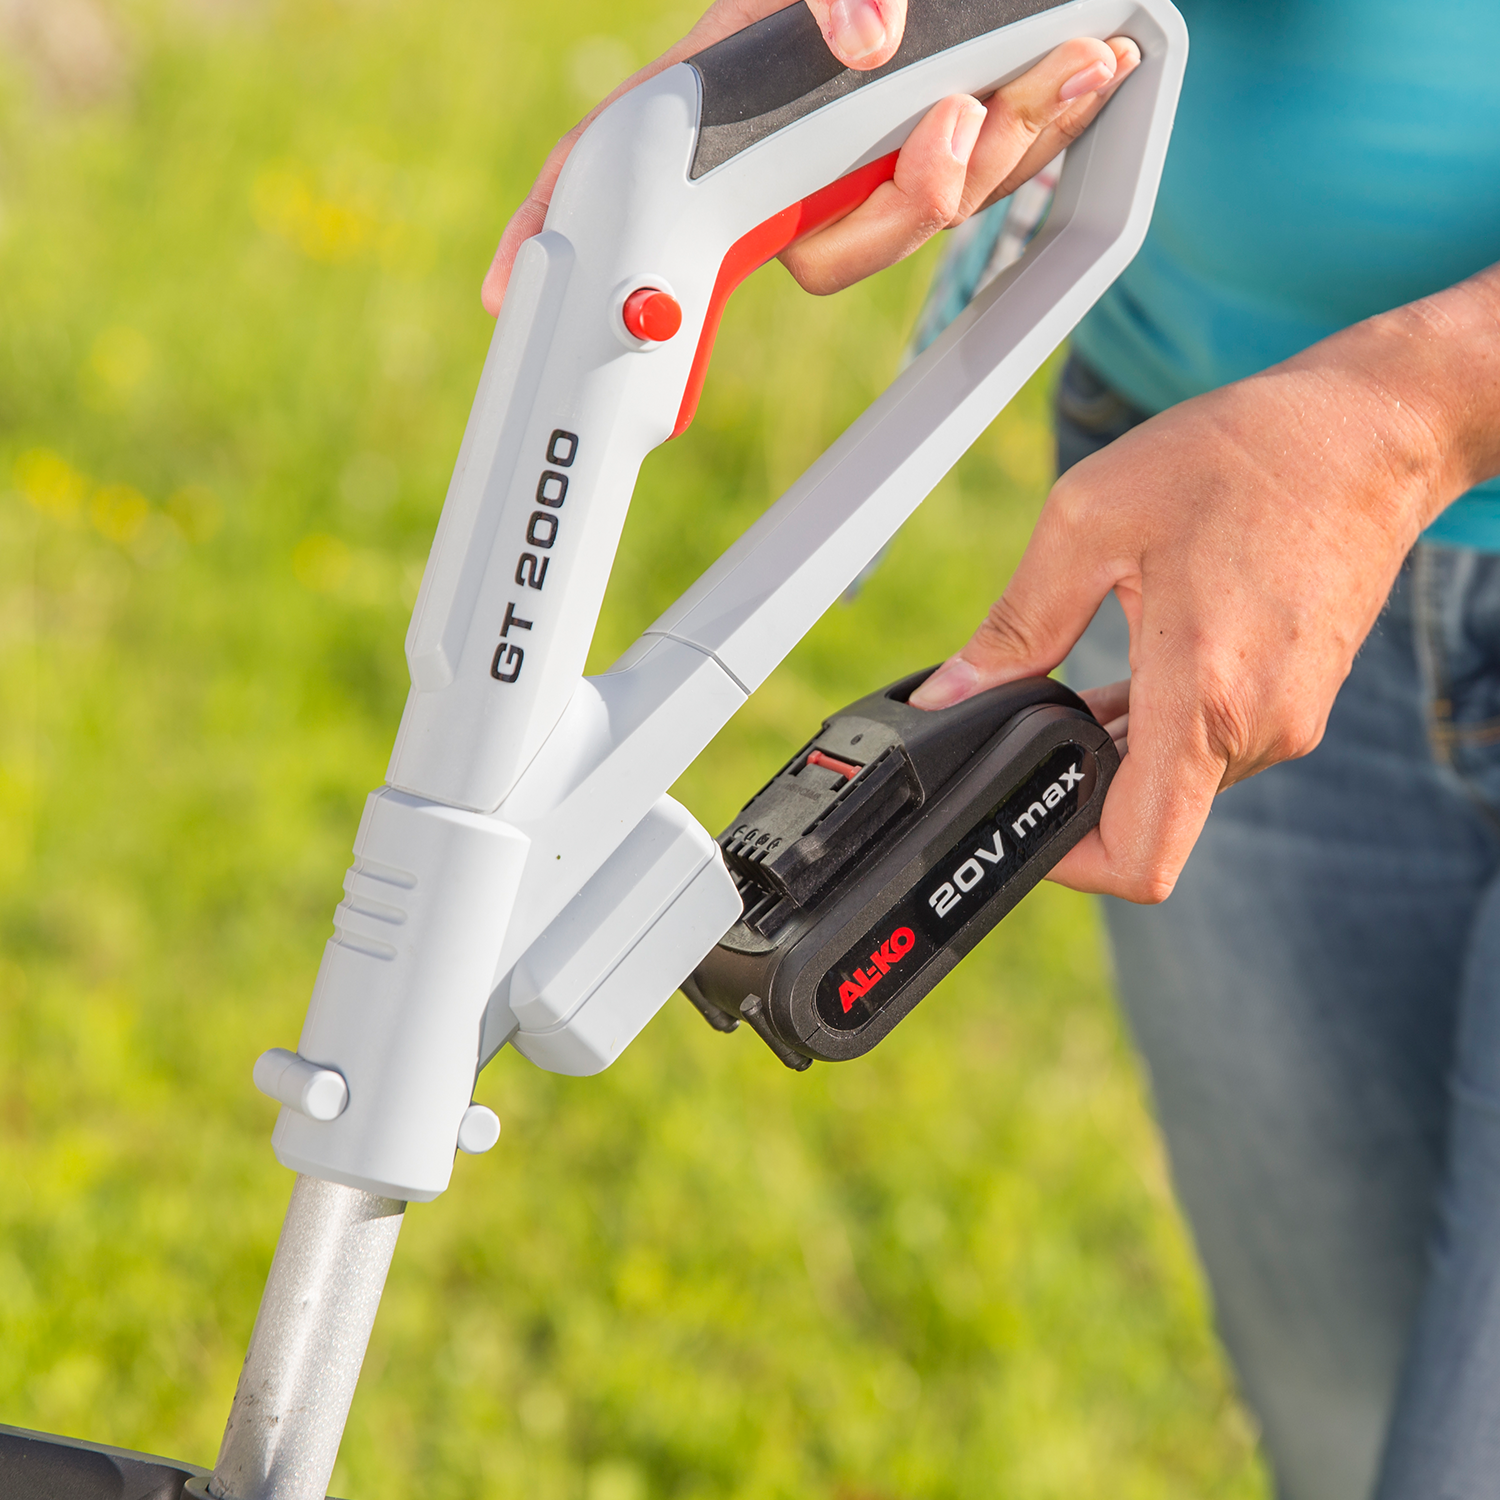 Easyflex_Trimmer_1500x1500.png